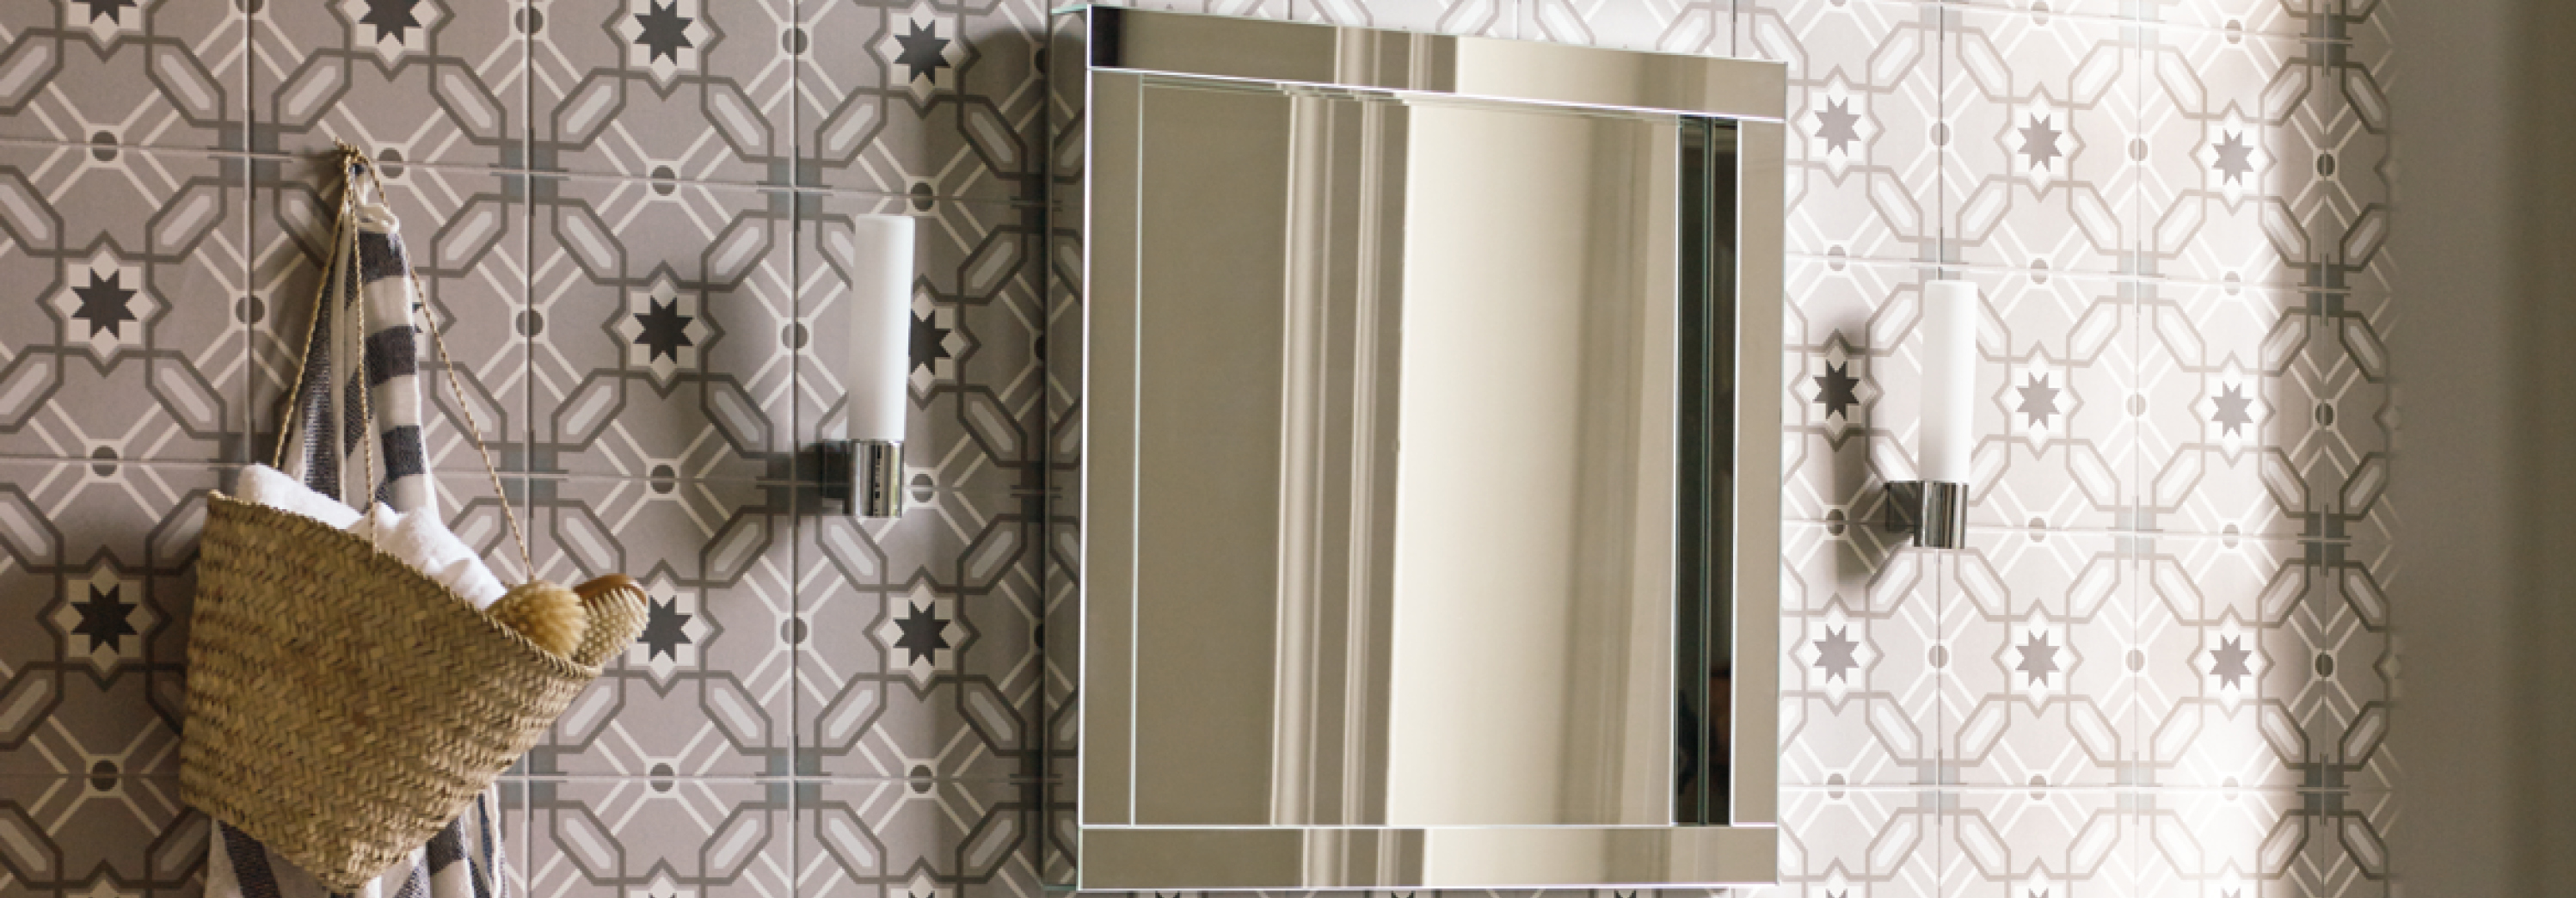 Decorative Mirrors Ranges Bathrooms Fired Earth